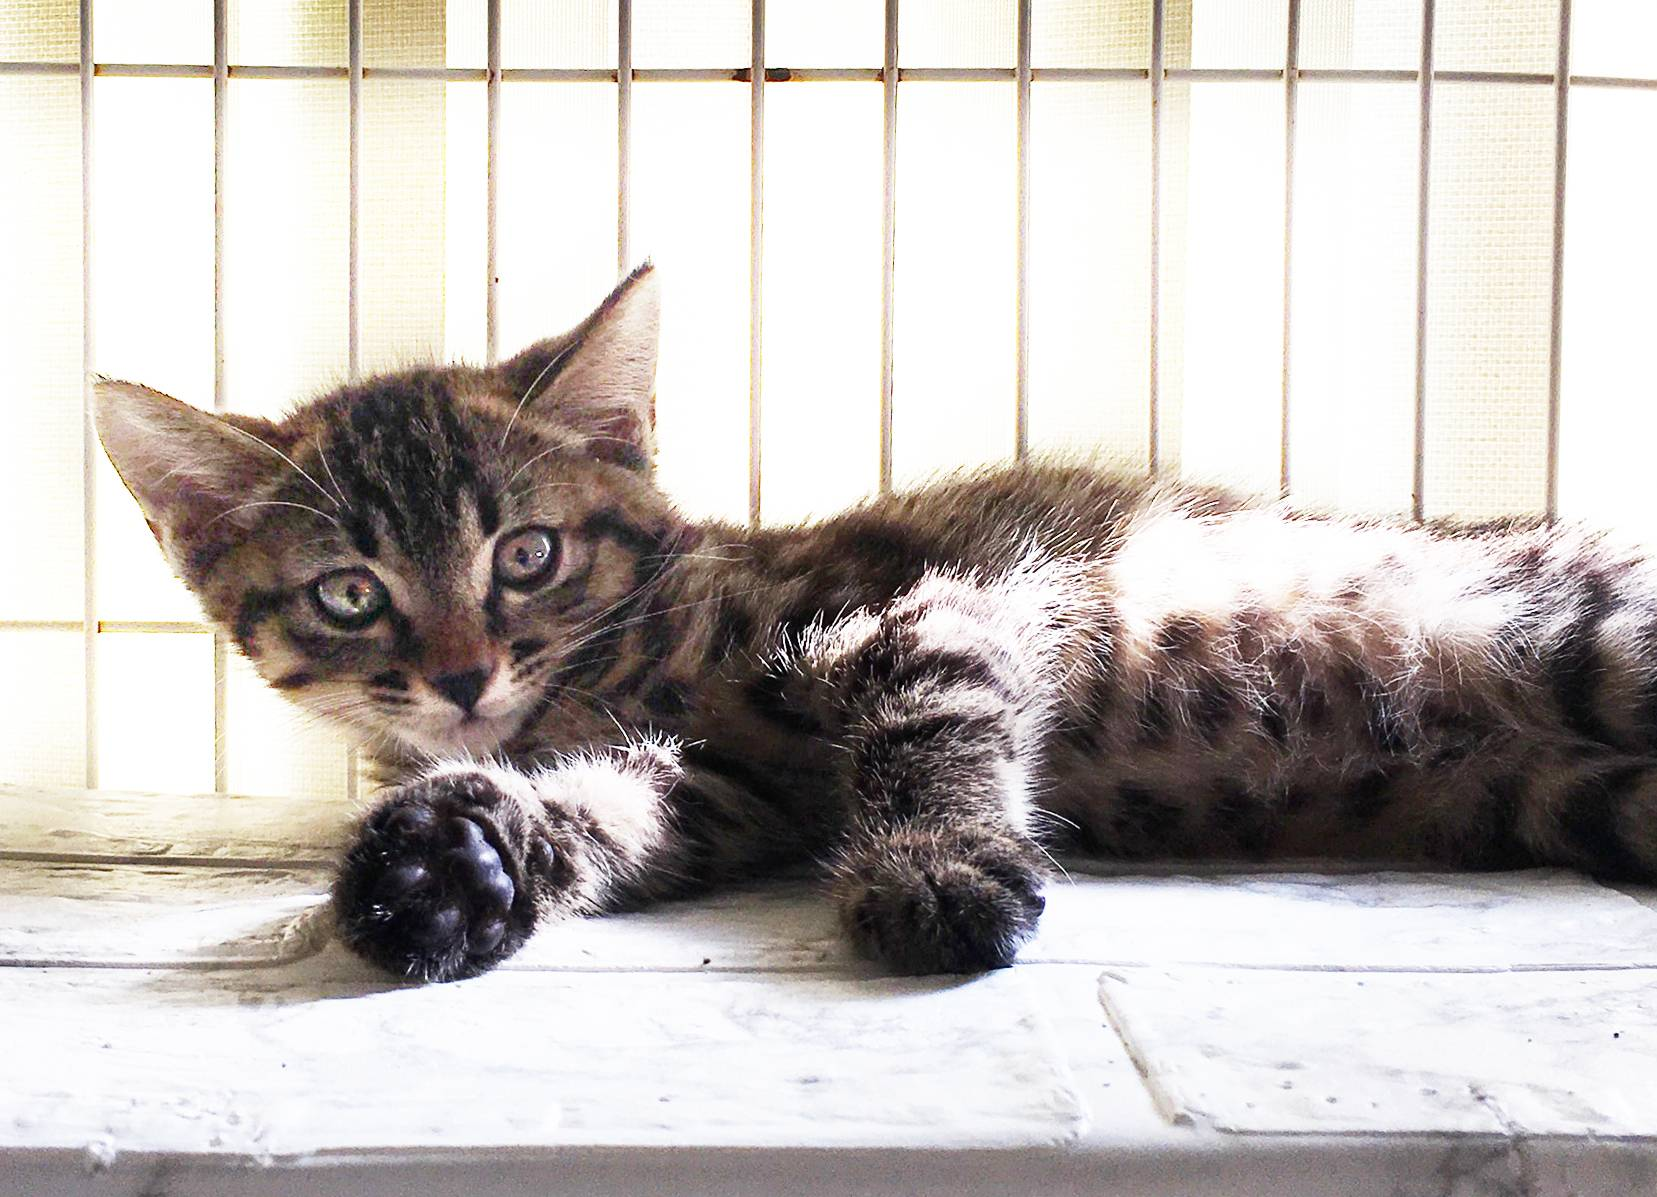 Eye on the ball: Choco is a kitten looking for a place to play.  | JULIE OKAMOTO